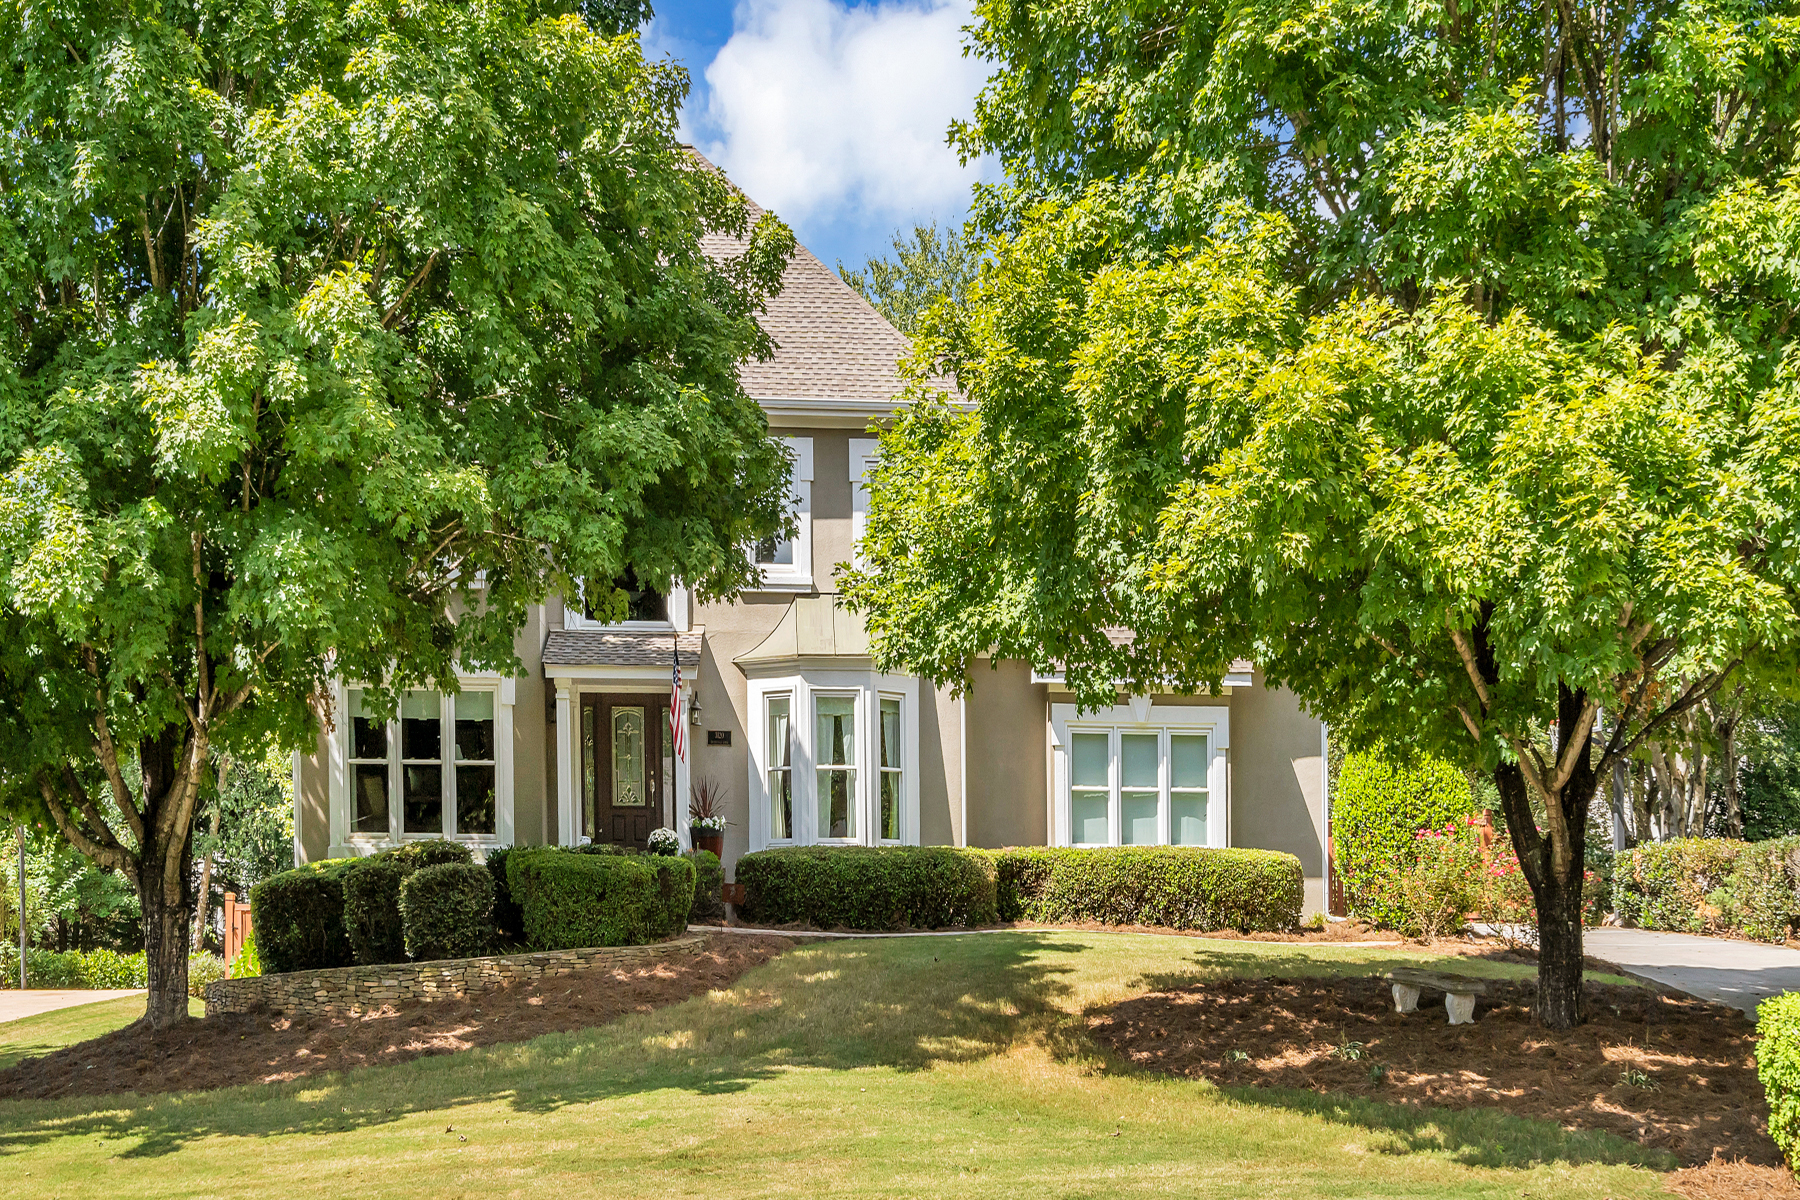 Single Family Home for Sale at Pool Oasis Nestled Between Downtown Alpharetta And Crabapple Milton 3120 Brierfield Rd Alpharetta, Georgia 30004 United States